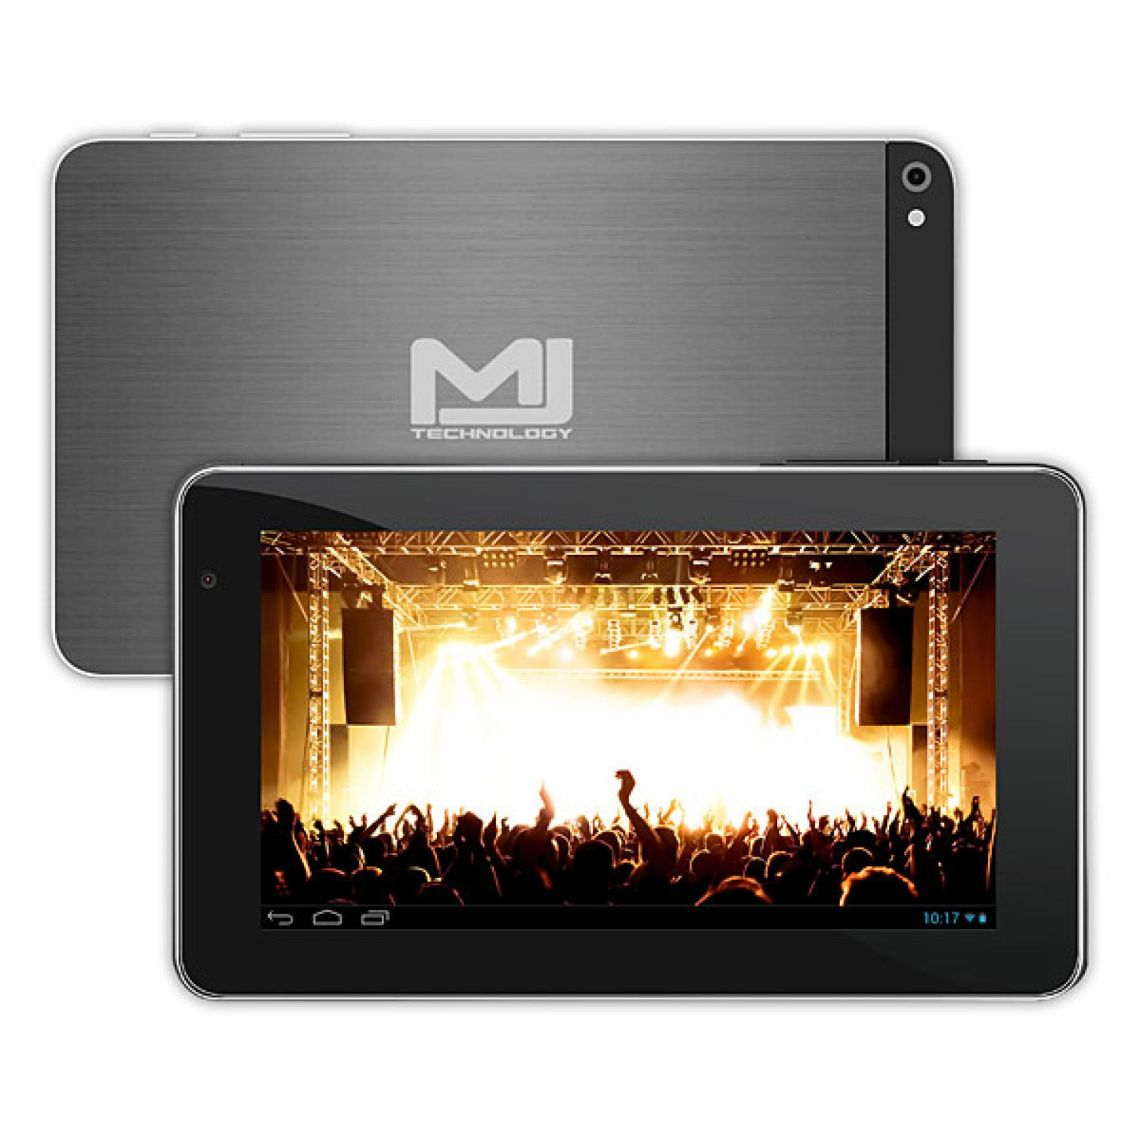 MJ Technology Android Tablet with Built-in HDTV Tuner | ThinkGeek